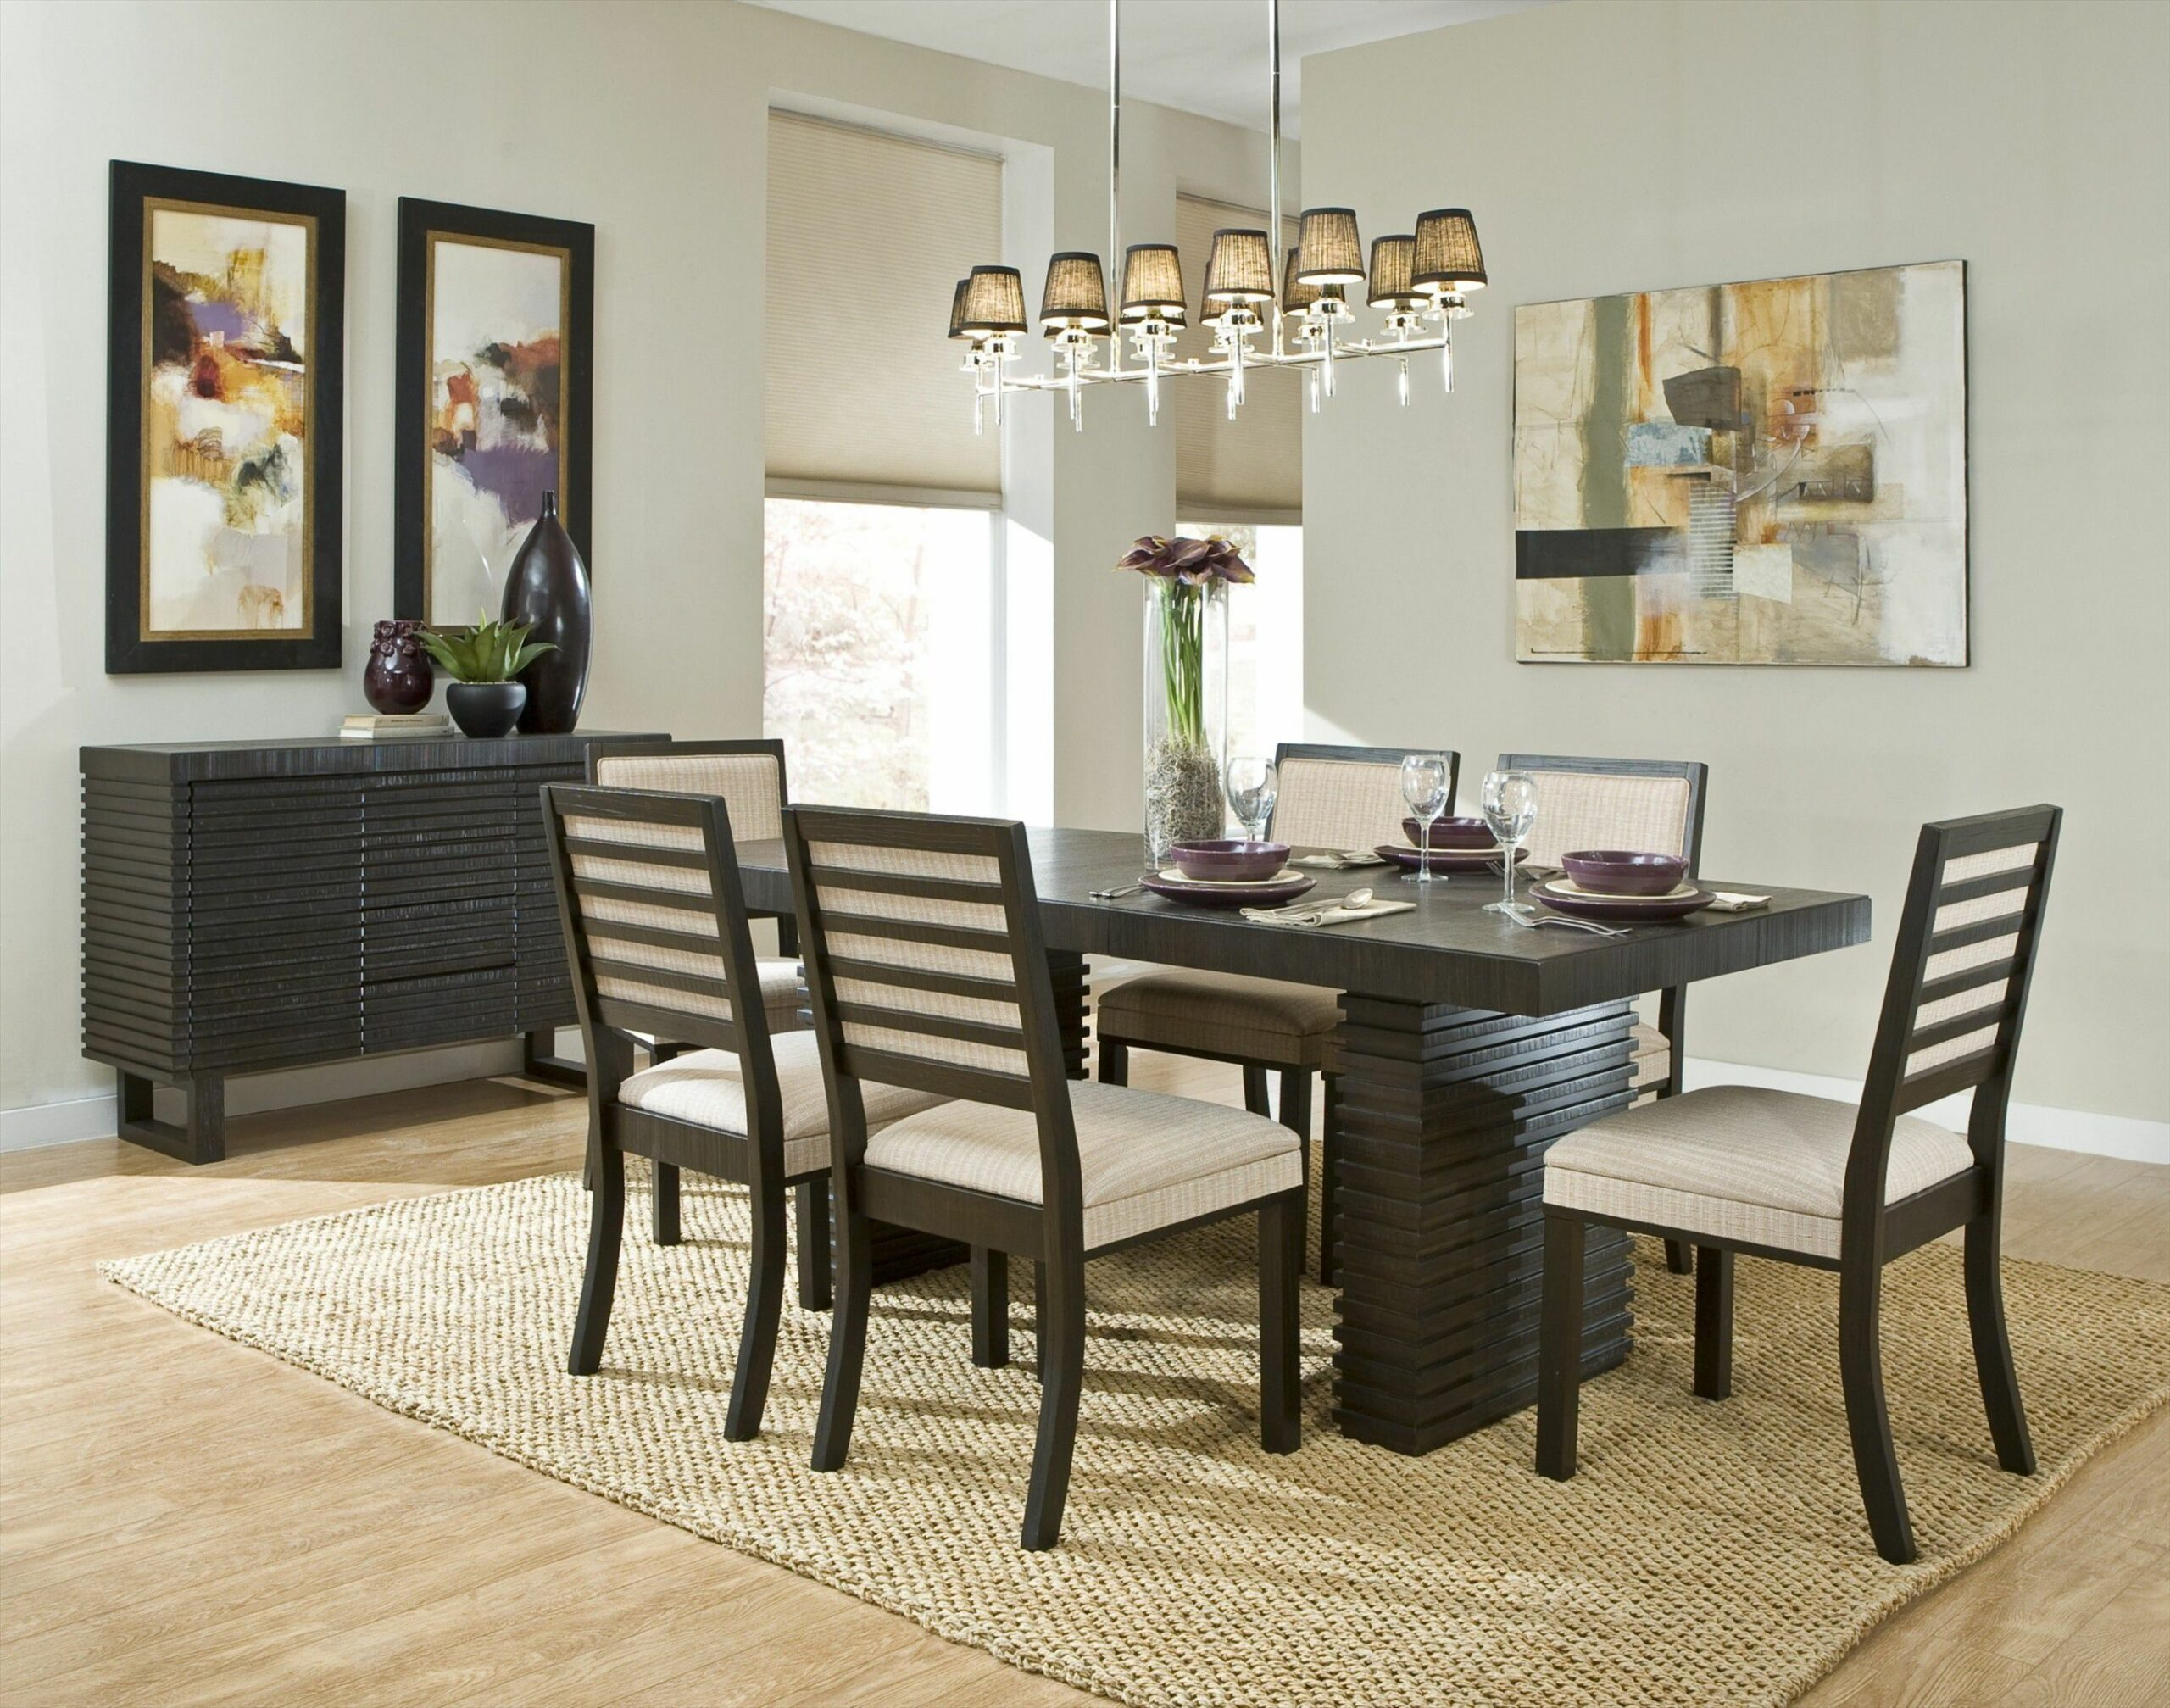 Dining Room : Dining Room Area Rugs Tips And Ideas Accommodating ...